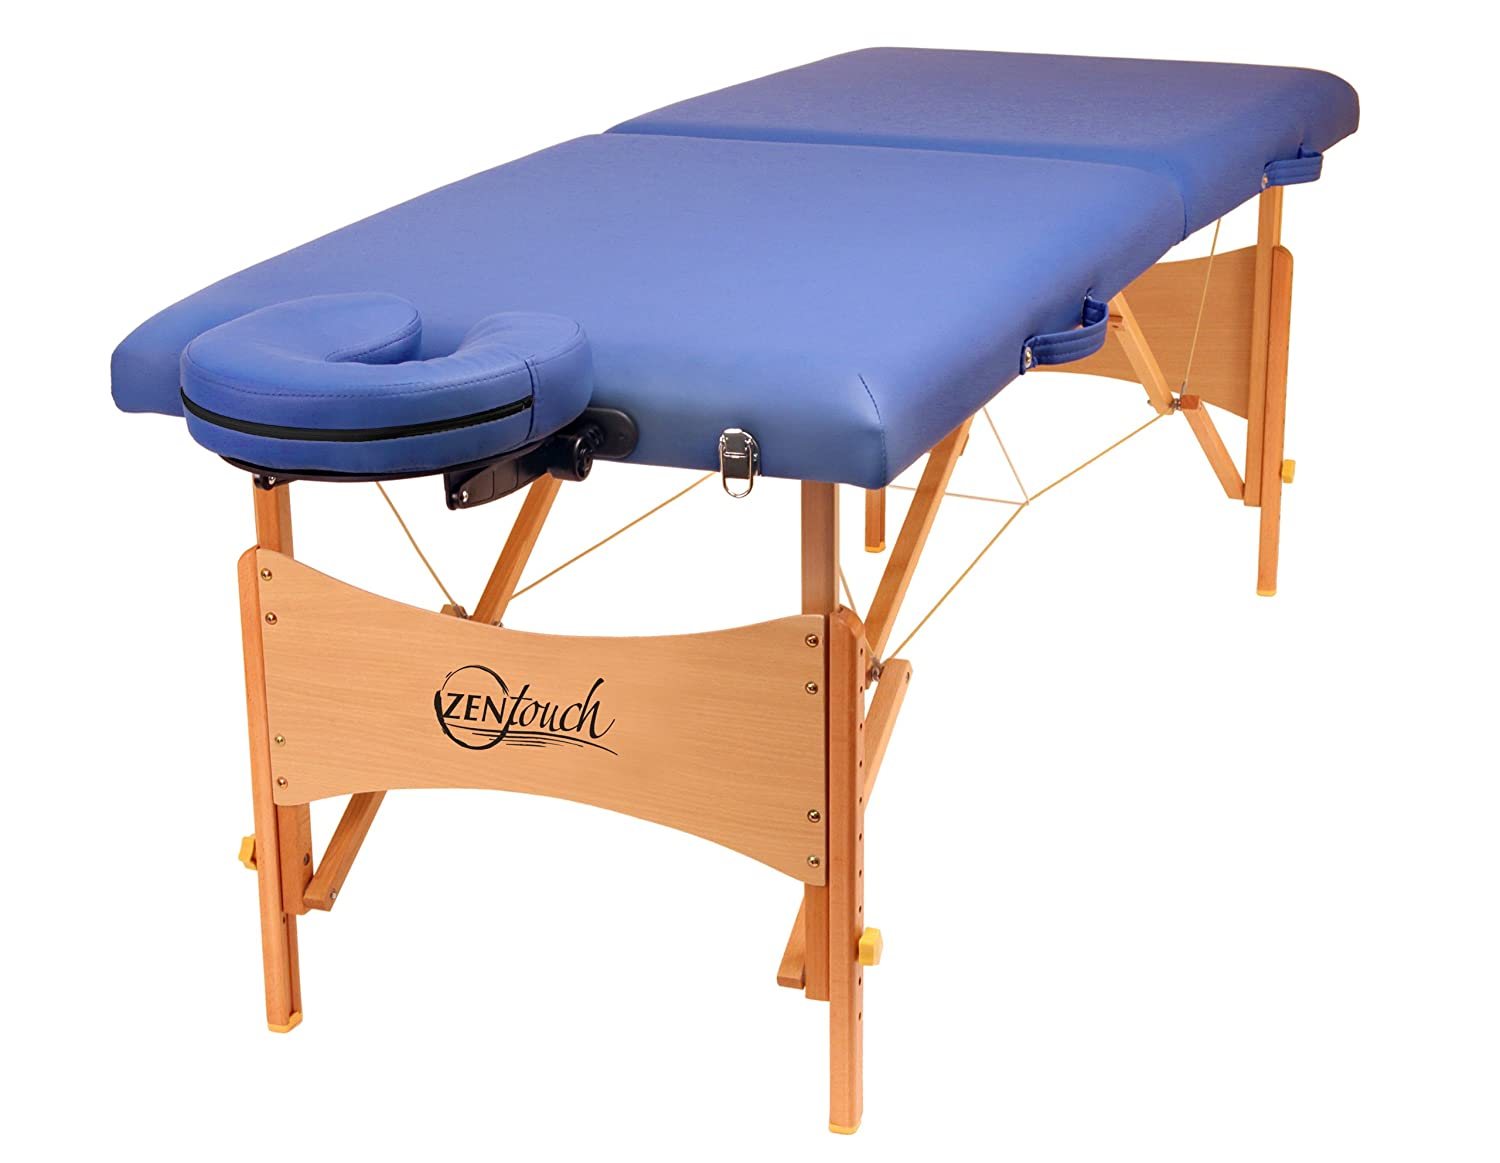 Lightweight portable massage table - Amazon Com Master Massage Zentouch Portable Massage Table Blue 27 Inch Health Personal Care